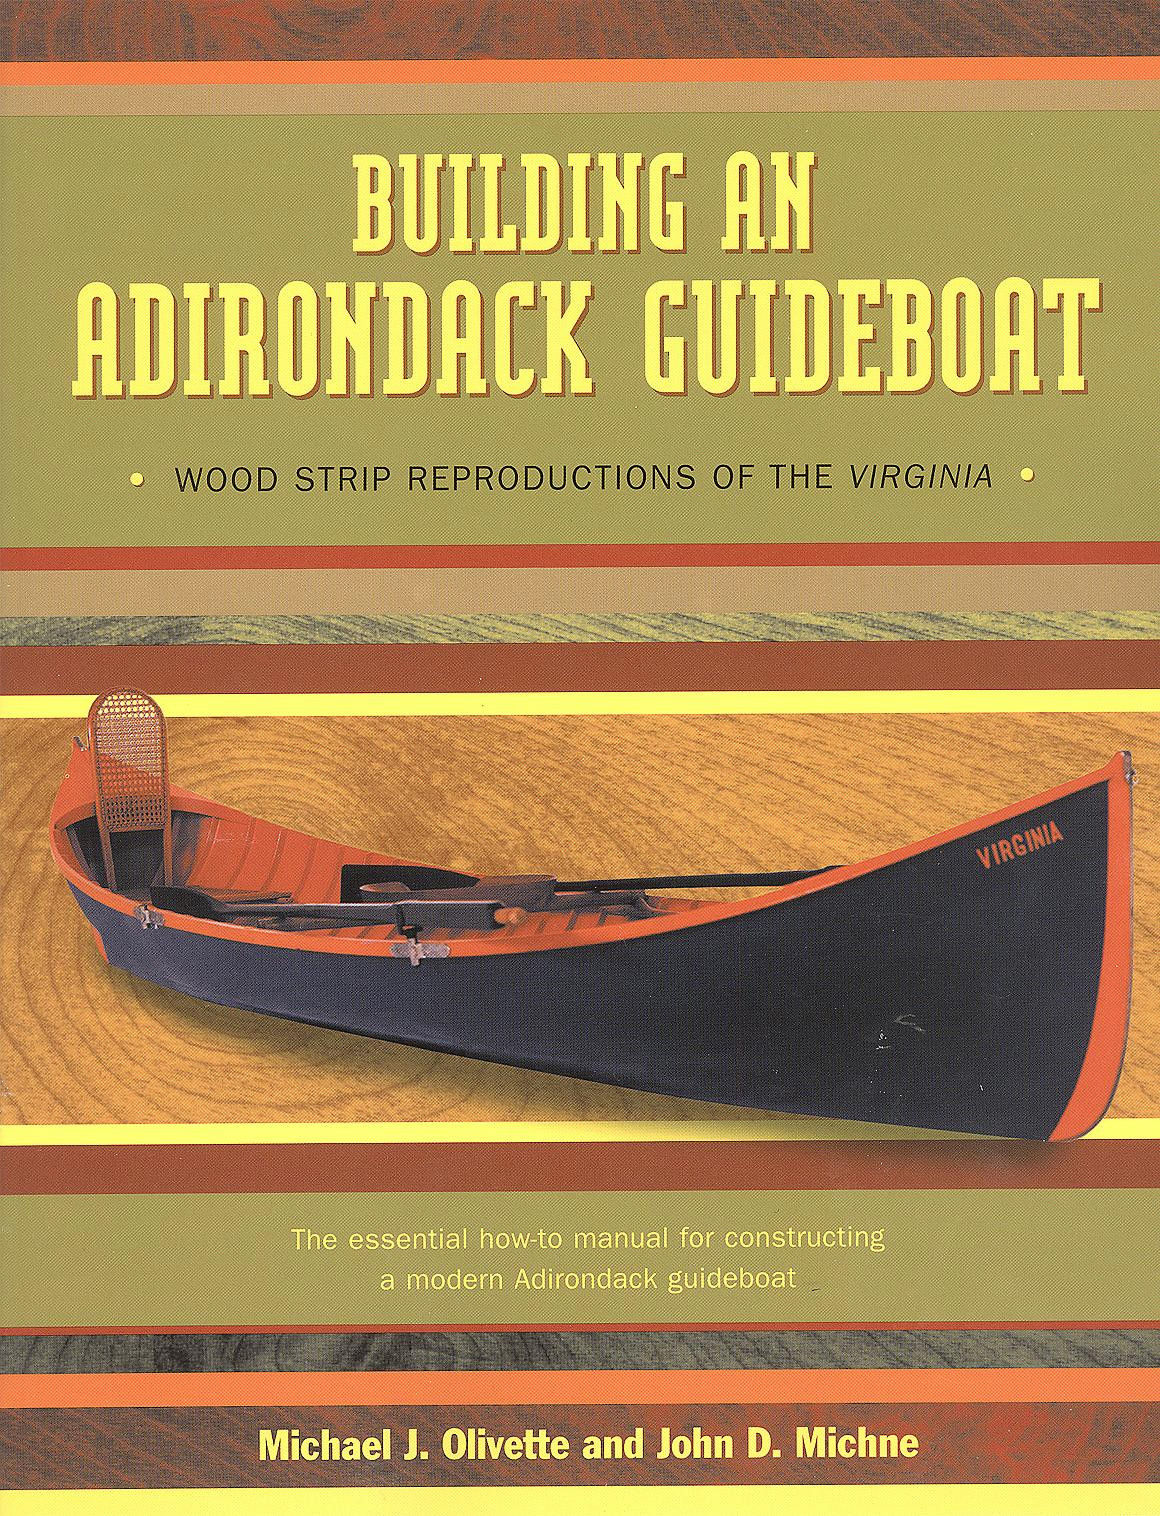 Building An Adirondack Guideboat Wood Strip Reproductions Of The Virginia